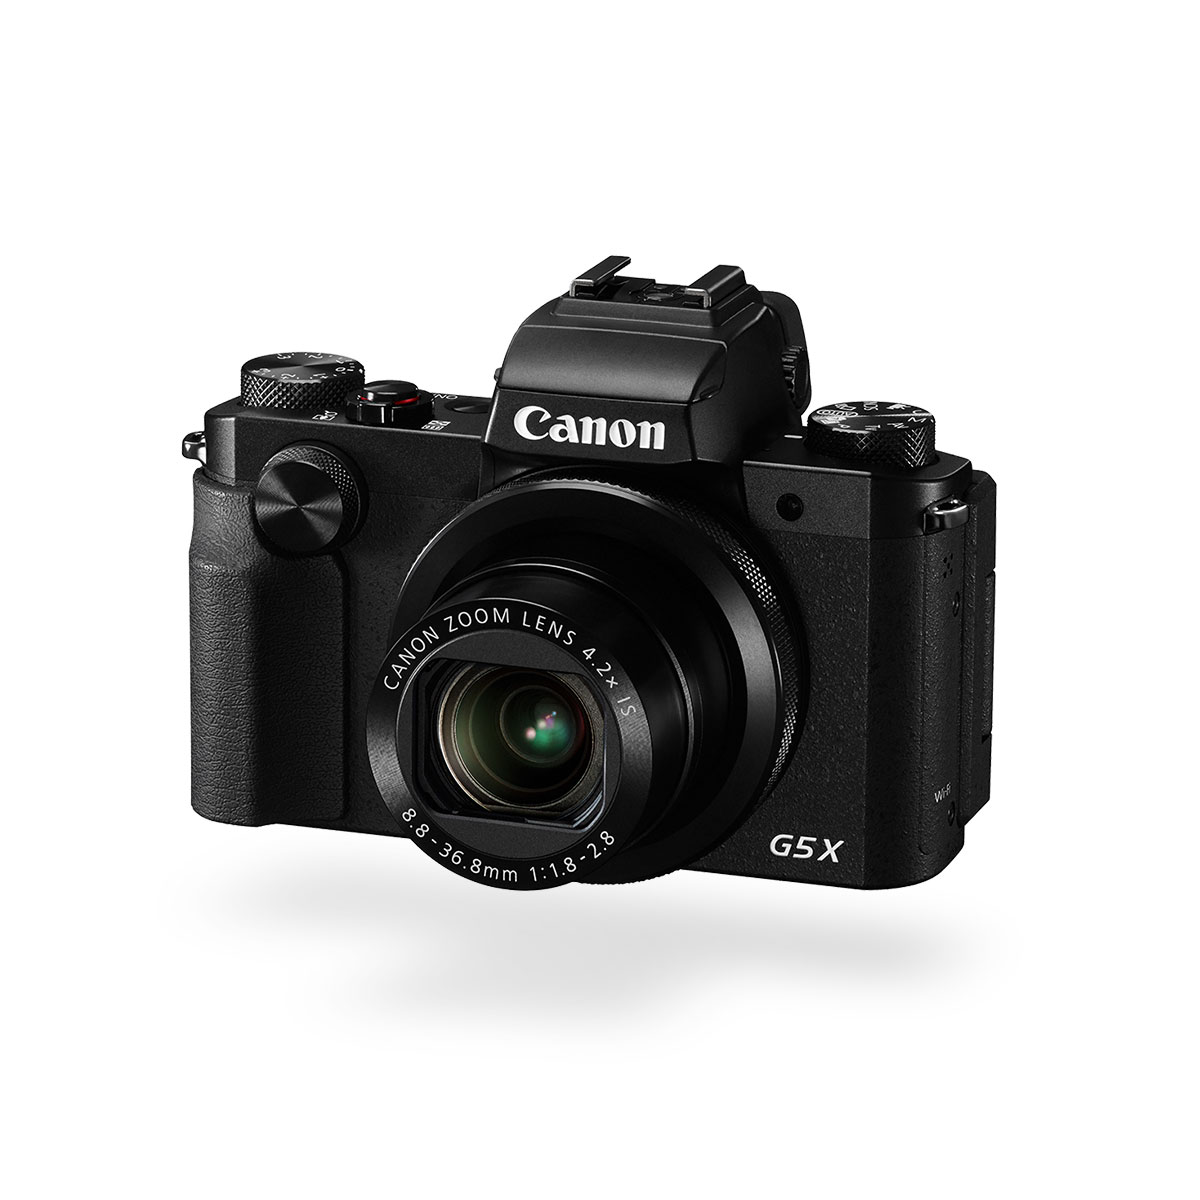 Canon PowerShot G5 X black front angled